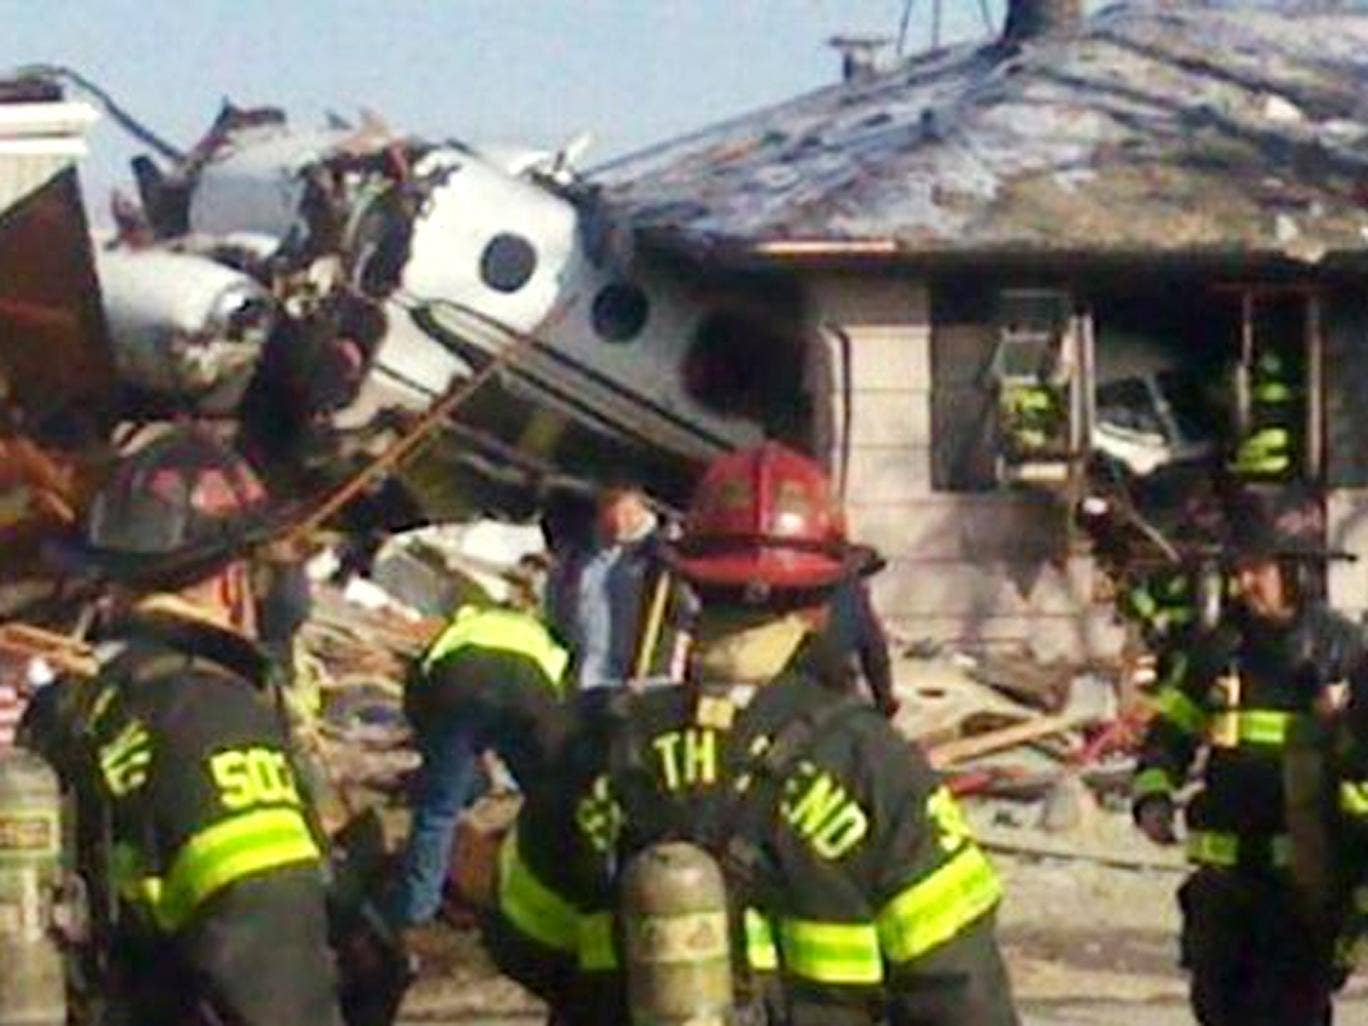 Firefighters and rescue workers look over the scene in South Bend, Indiana, after a small twin-jet aircraft crashed into houses near the airport